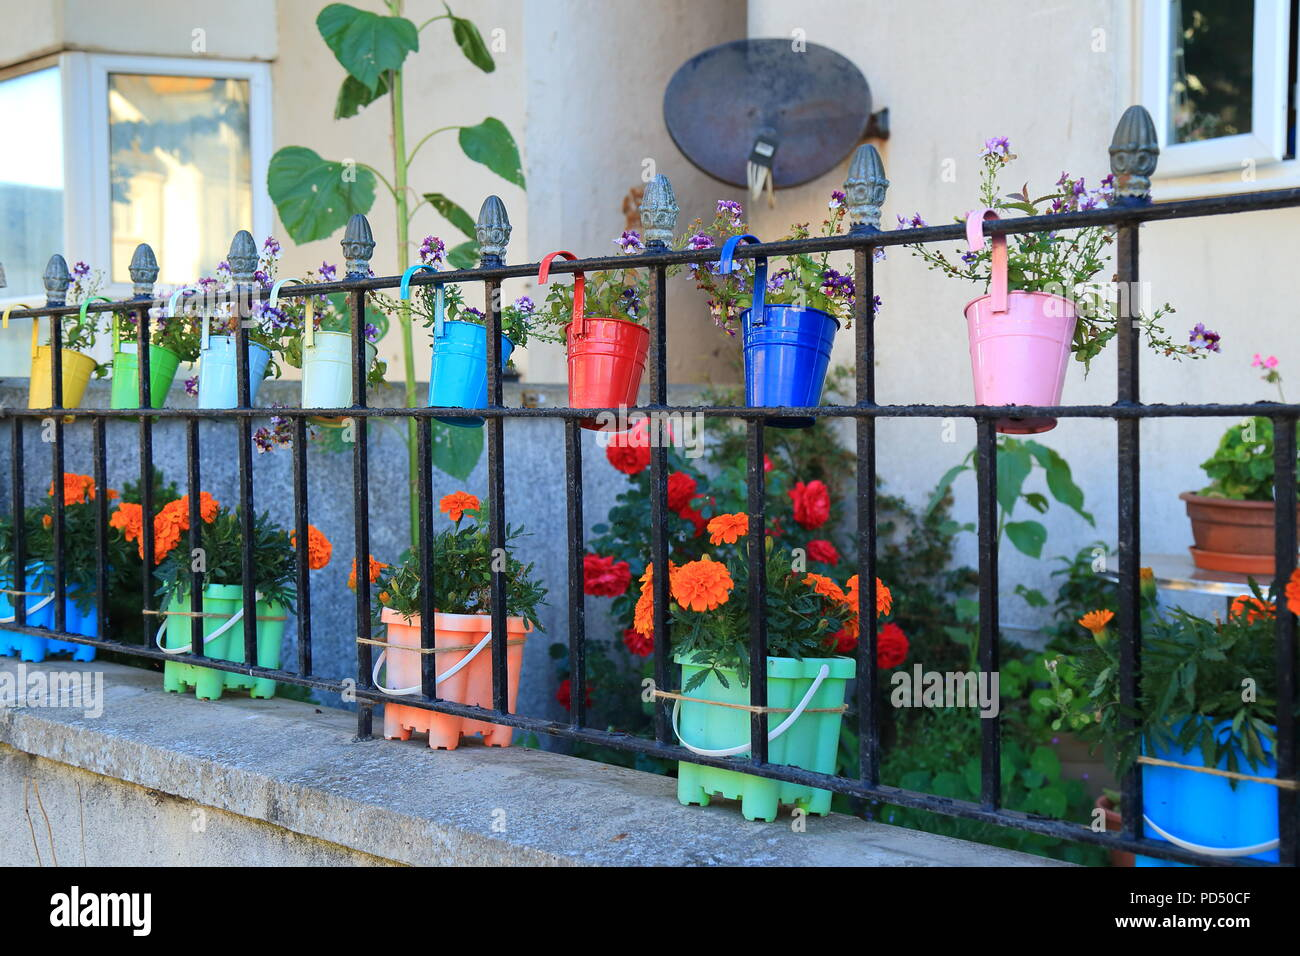 Row Of Very Colourful Garden Pots Displayed Around Metal Railings Fence    Stock Image